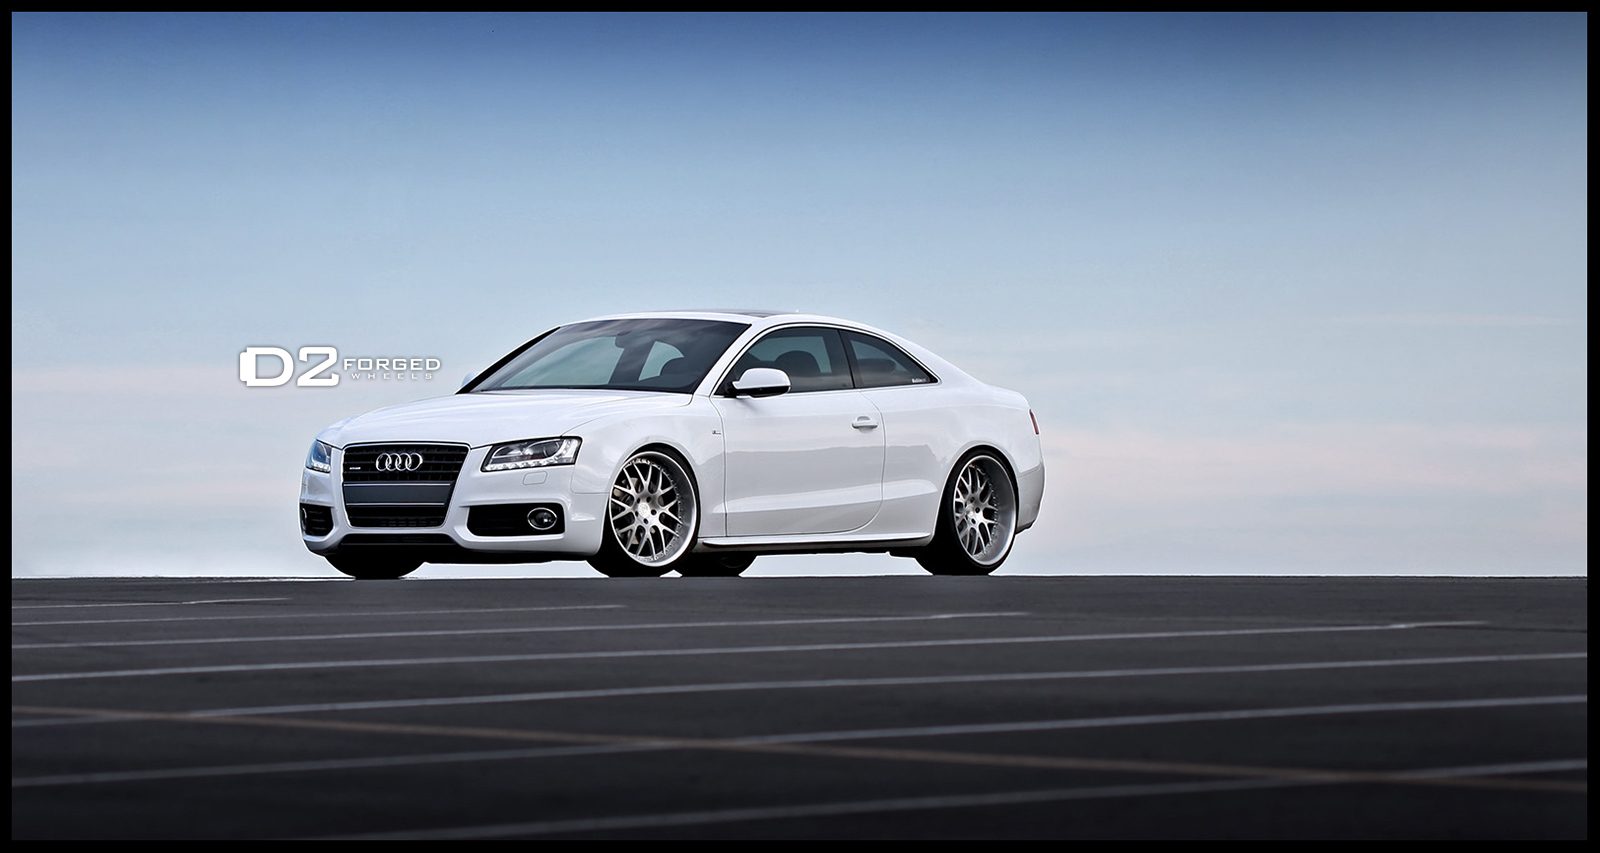 2012 audi a5 s line d2forged vs1 wheels 21 audi tuning mag. Black Bedroom Furniture Sets. Home Design Ideas